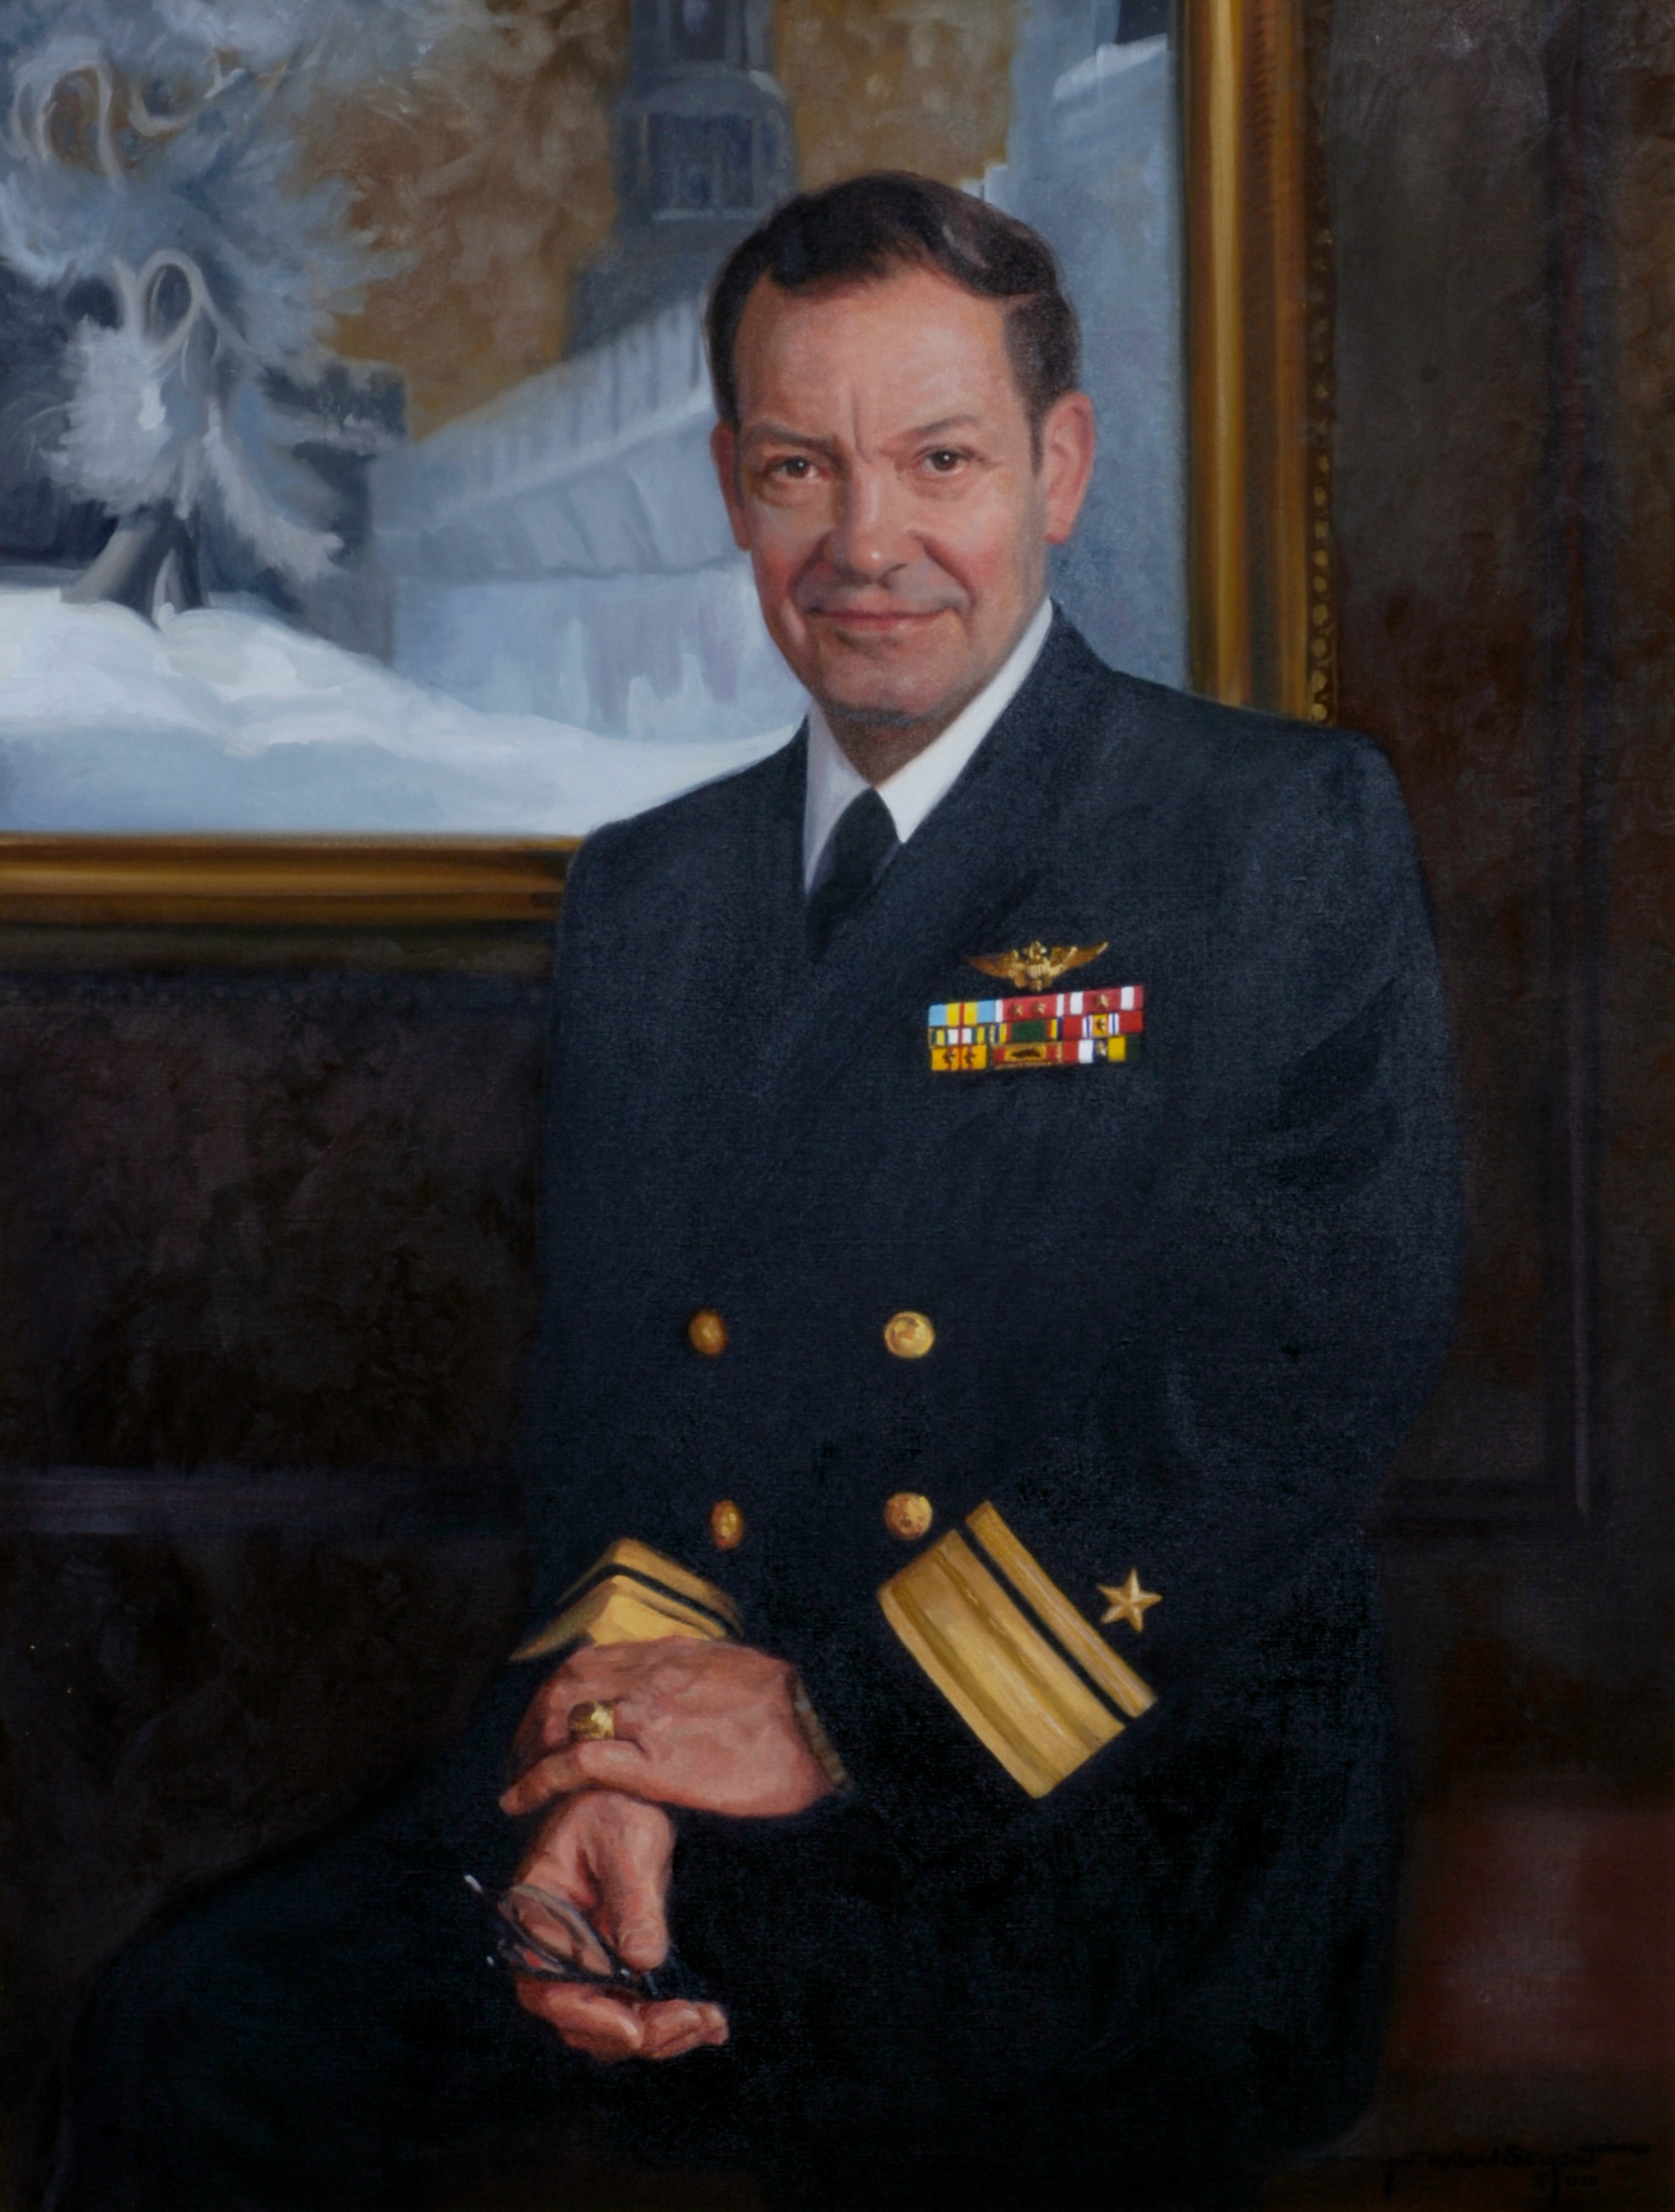 Rear Admiral Ronald J. Kurth